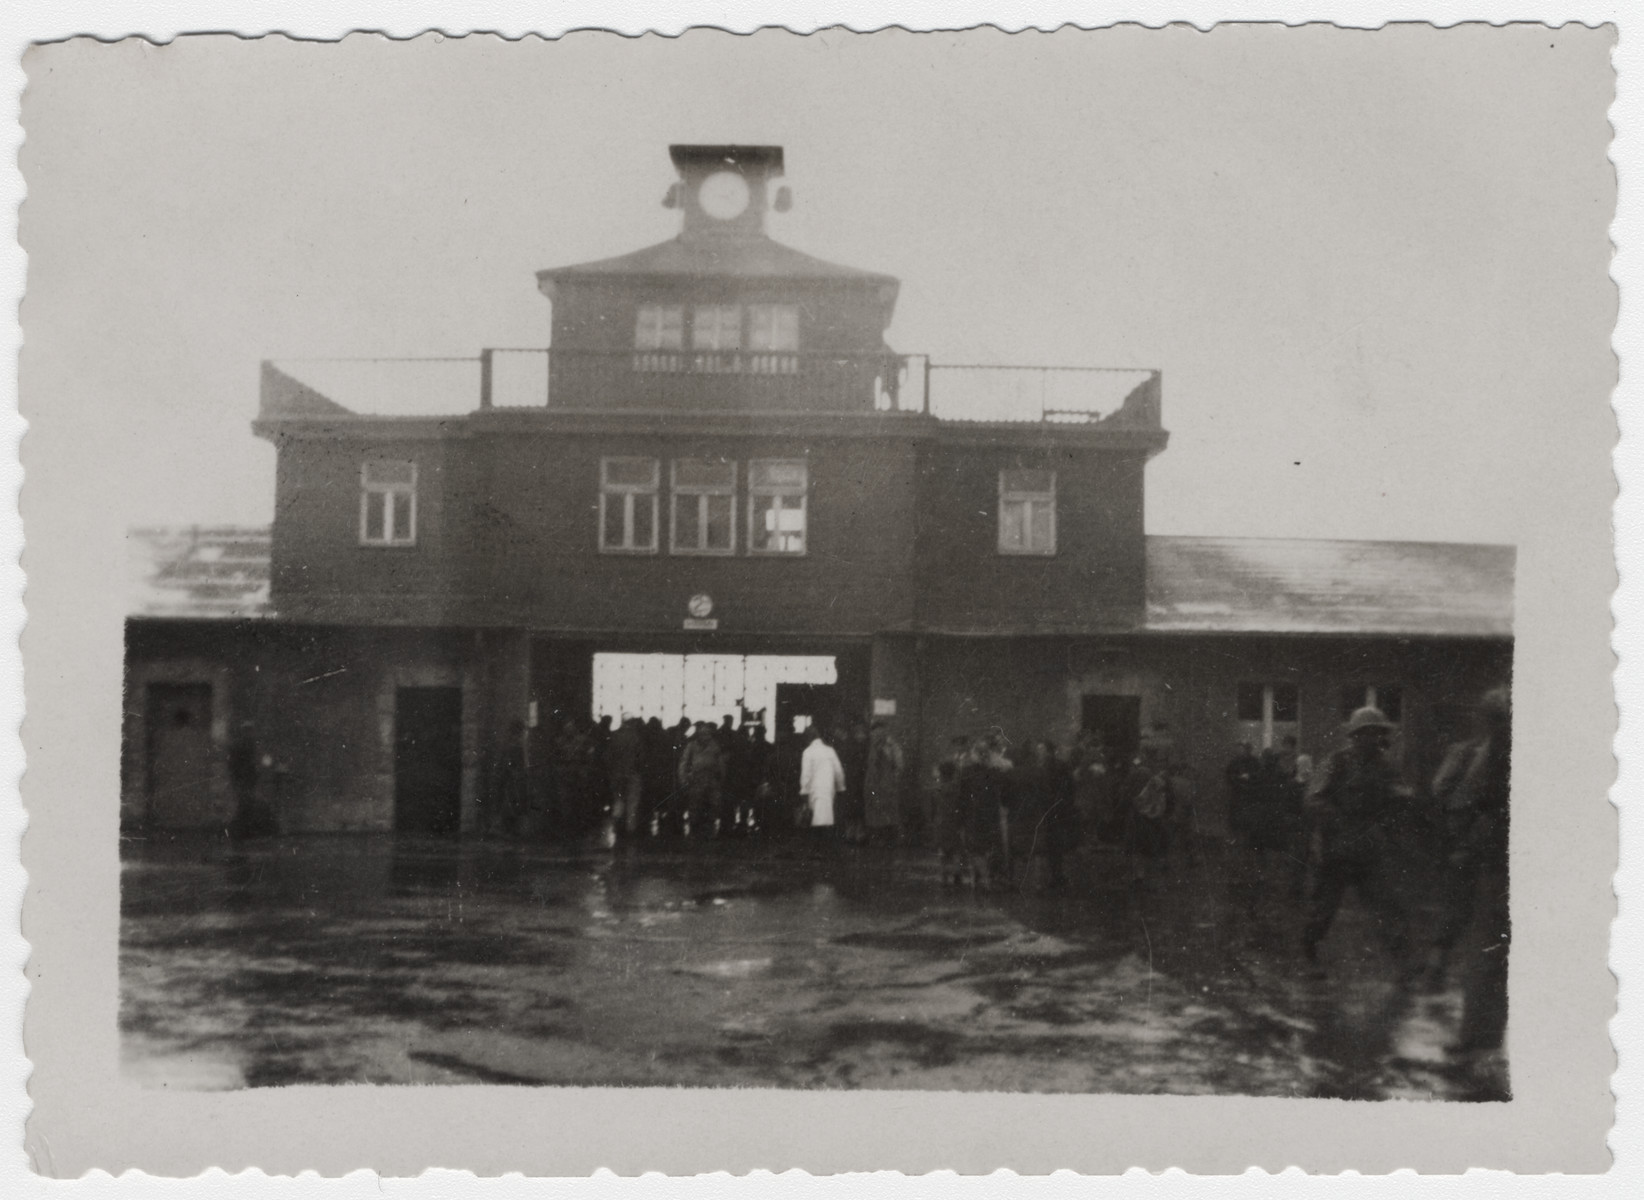 American soldiers enter the main gate to the Buchenwald concentration camp.